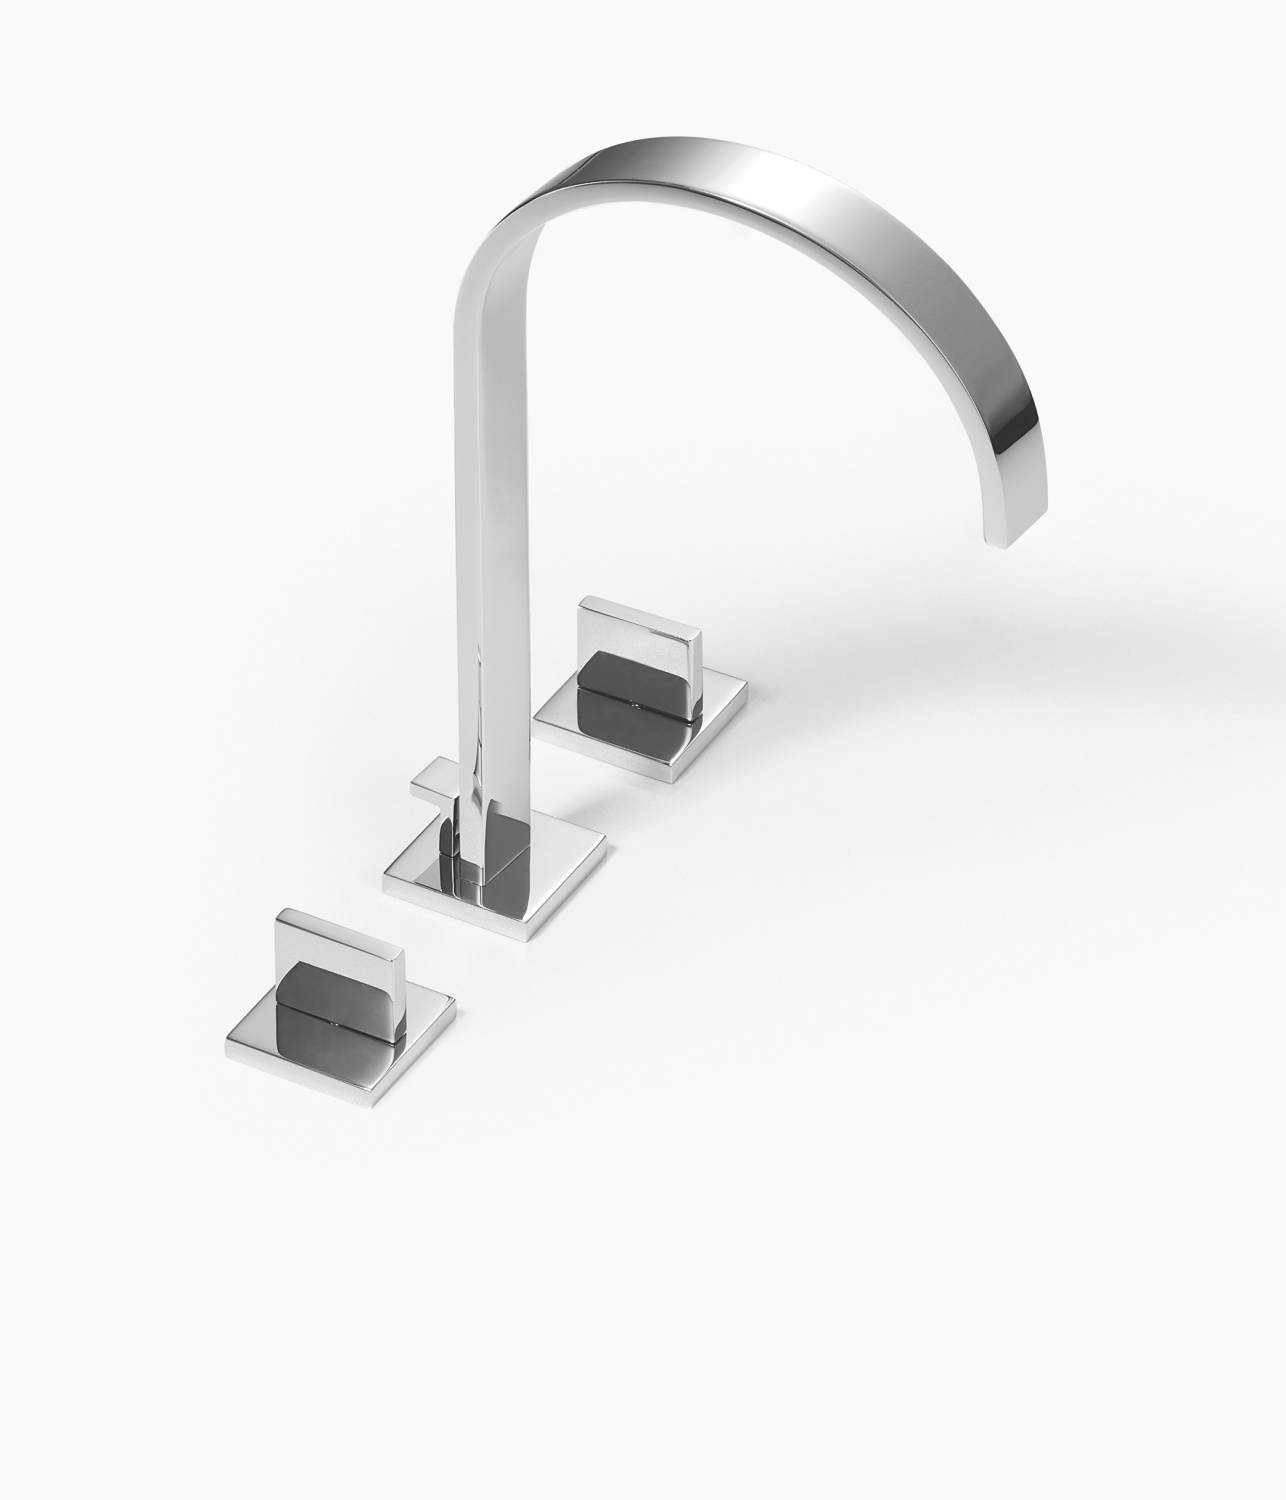 Three-hole basin mixer with raised spout with pop-up waste - polished chrome